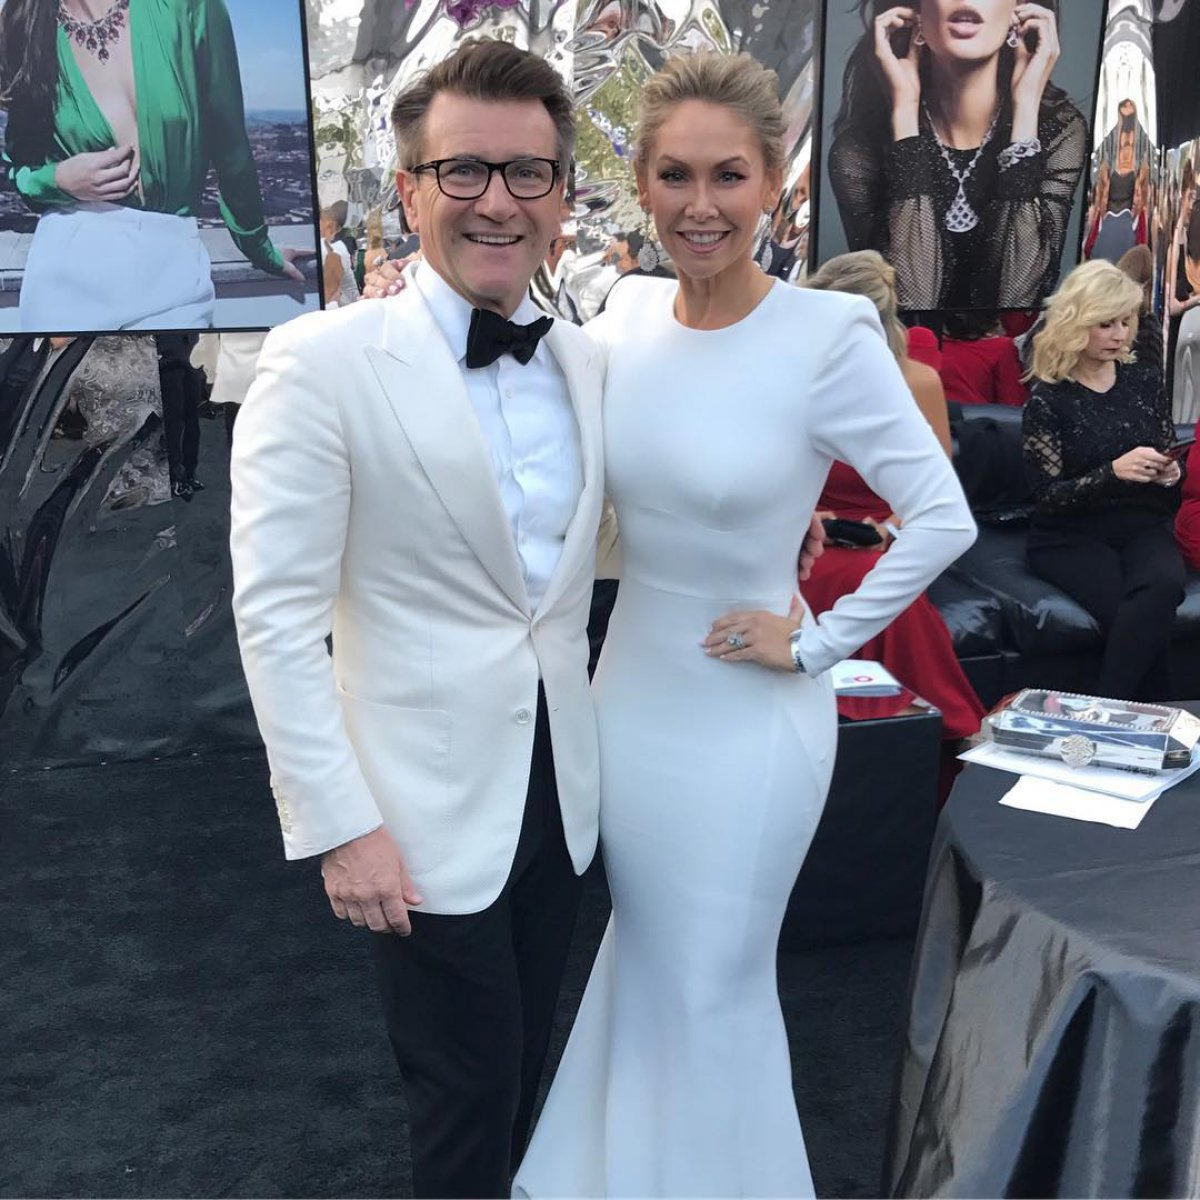 Story Dancing With The Stars Kym Johnson And Robert Herjavec Welcome Twins: Kym Johnson And Robert Herjavec Expecting Twin Babies